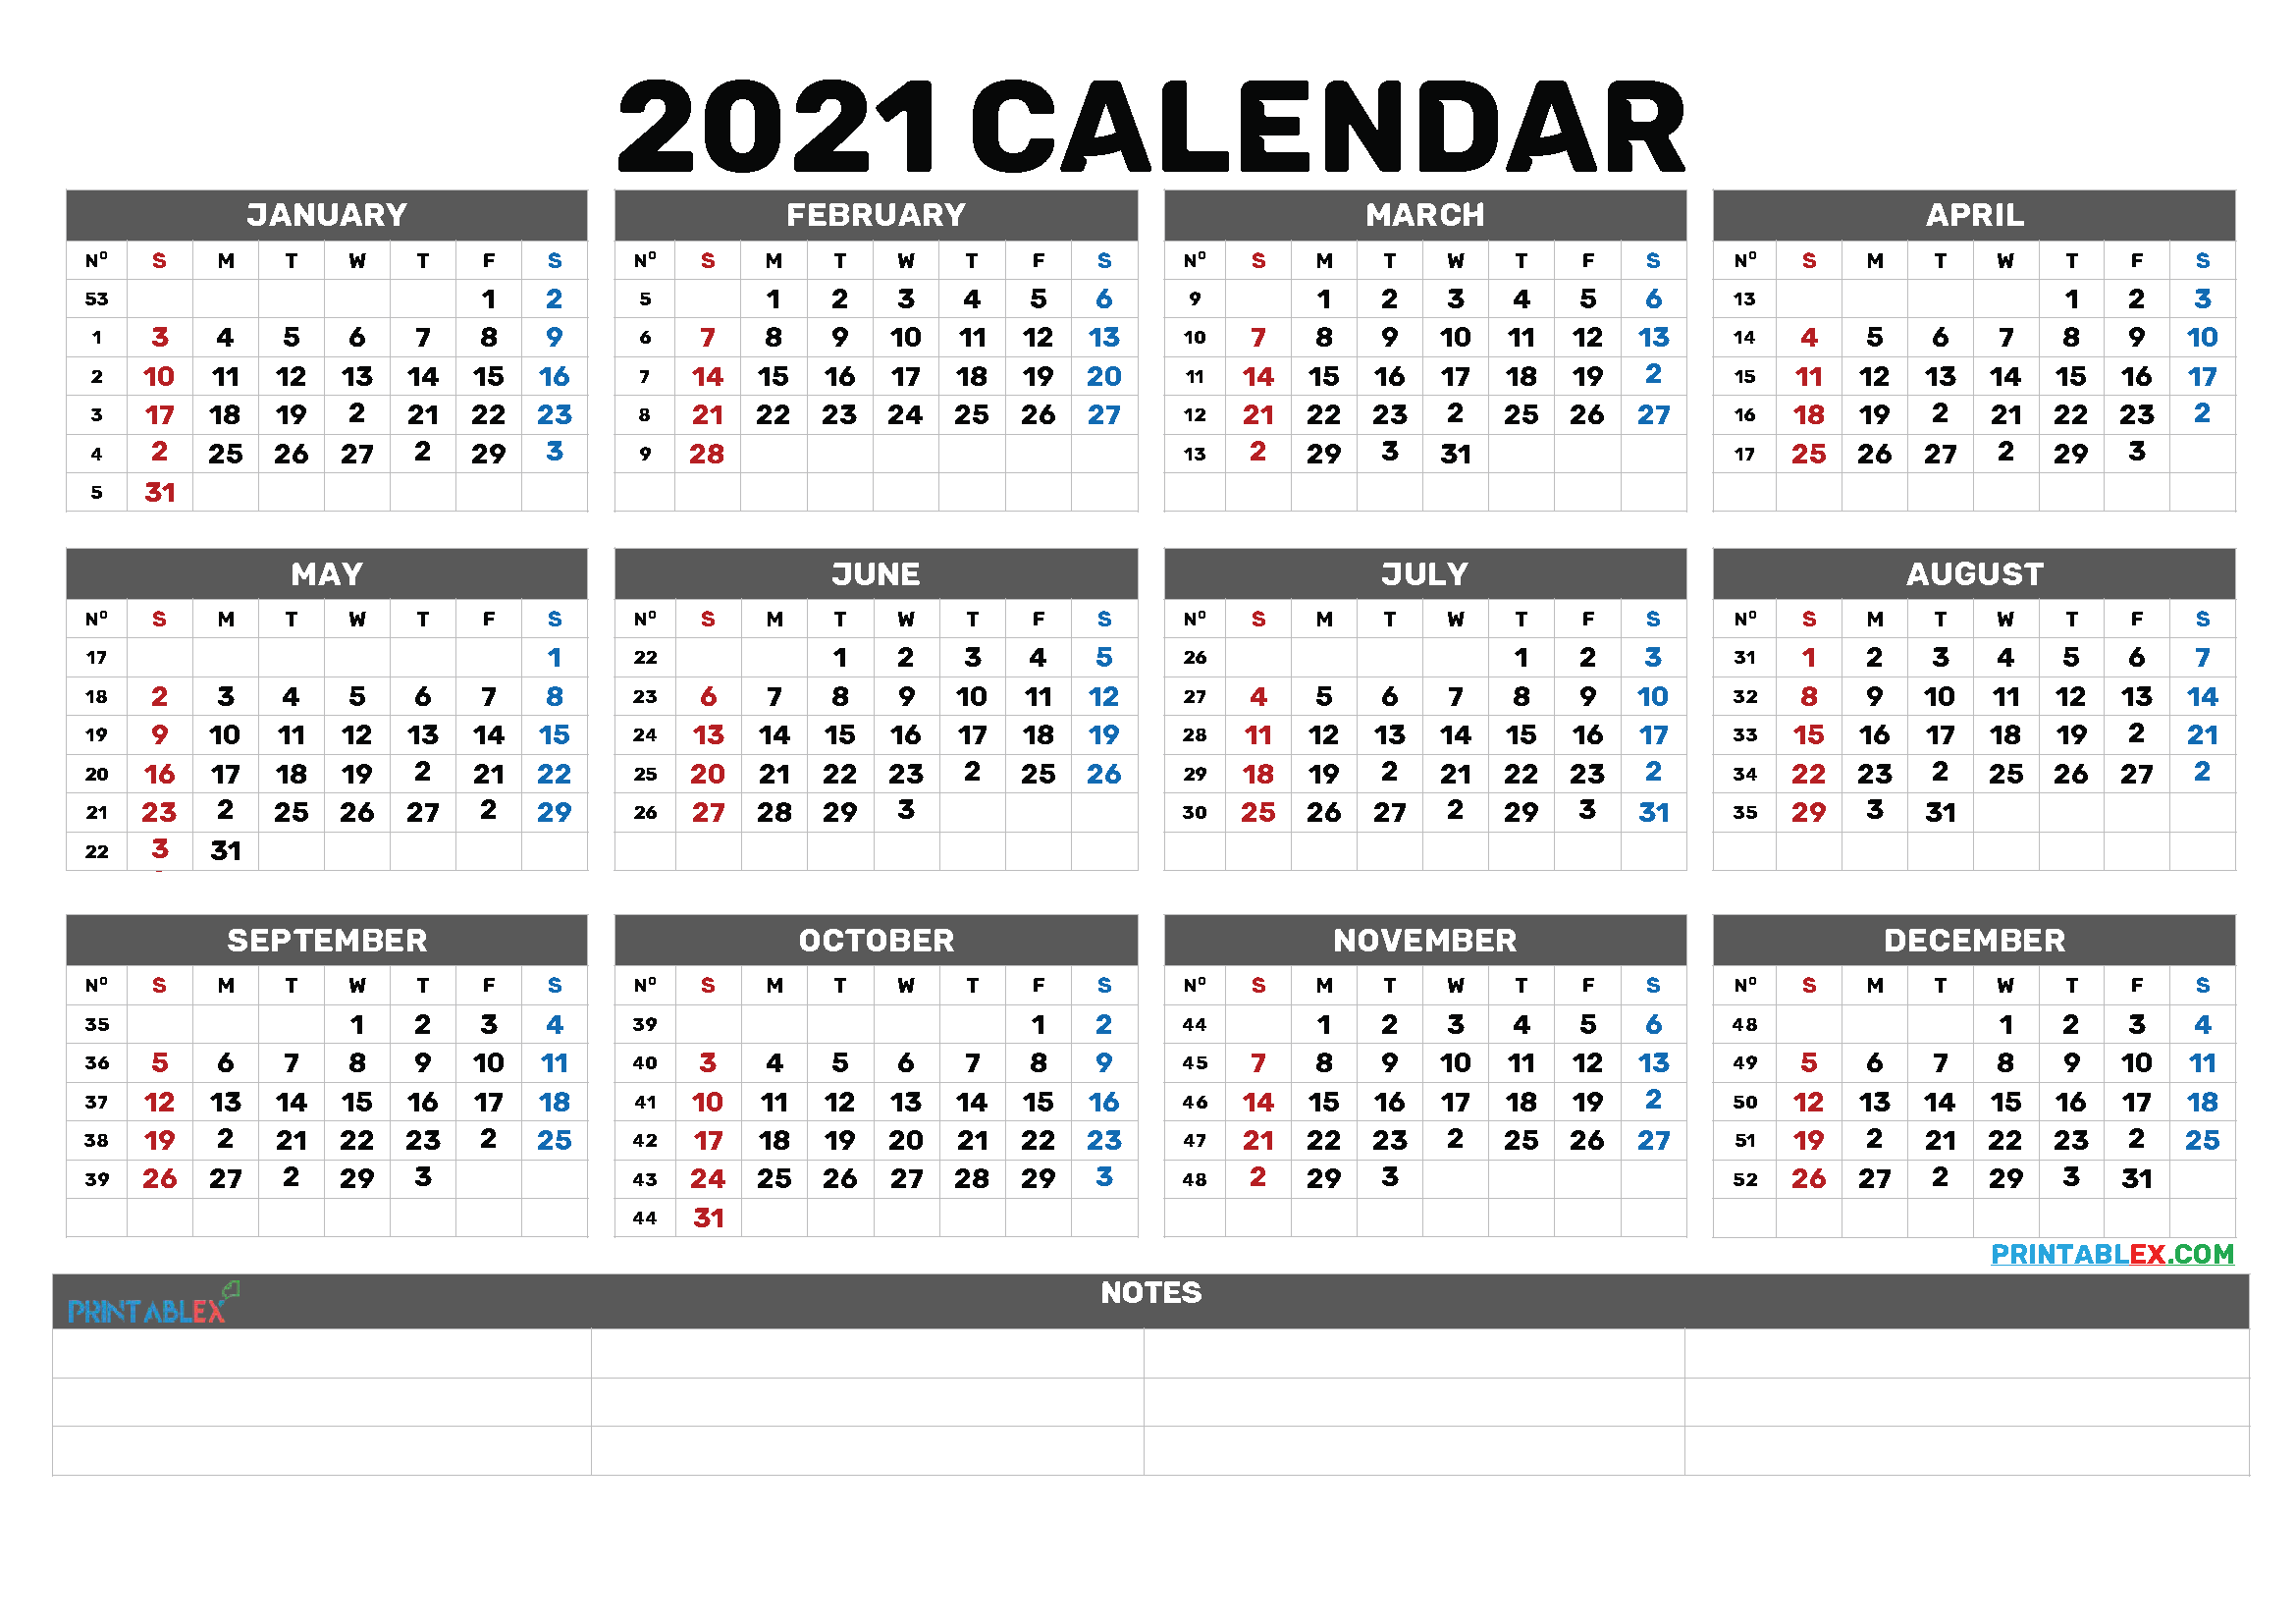 Free Printable 2021 Calendar by Month (Font: magenta)